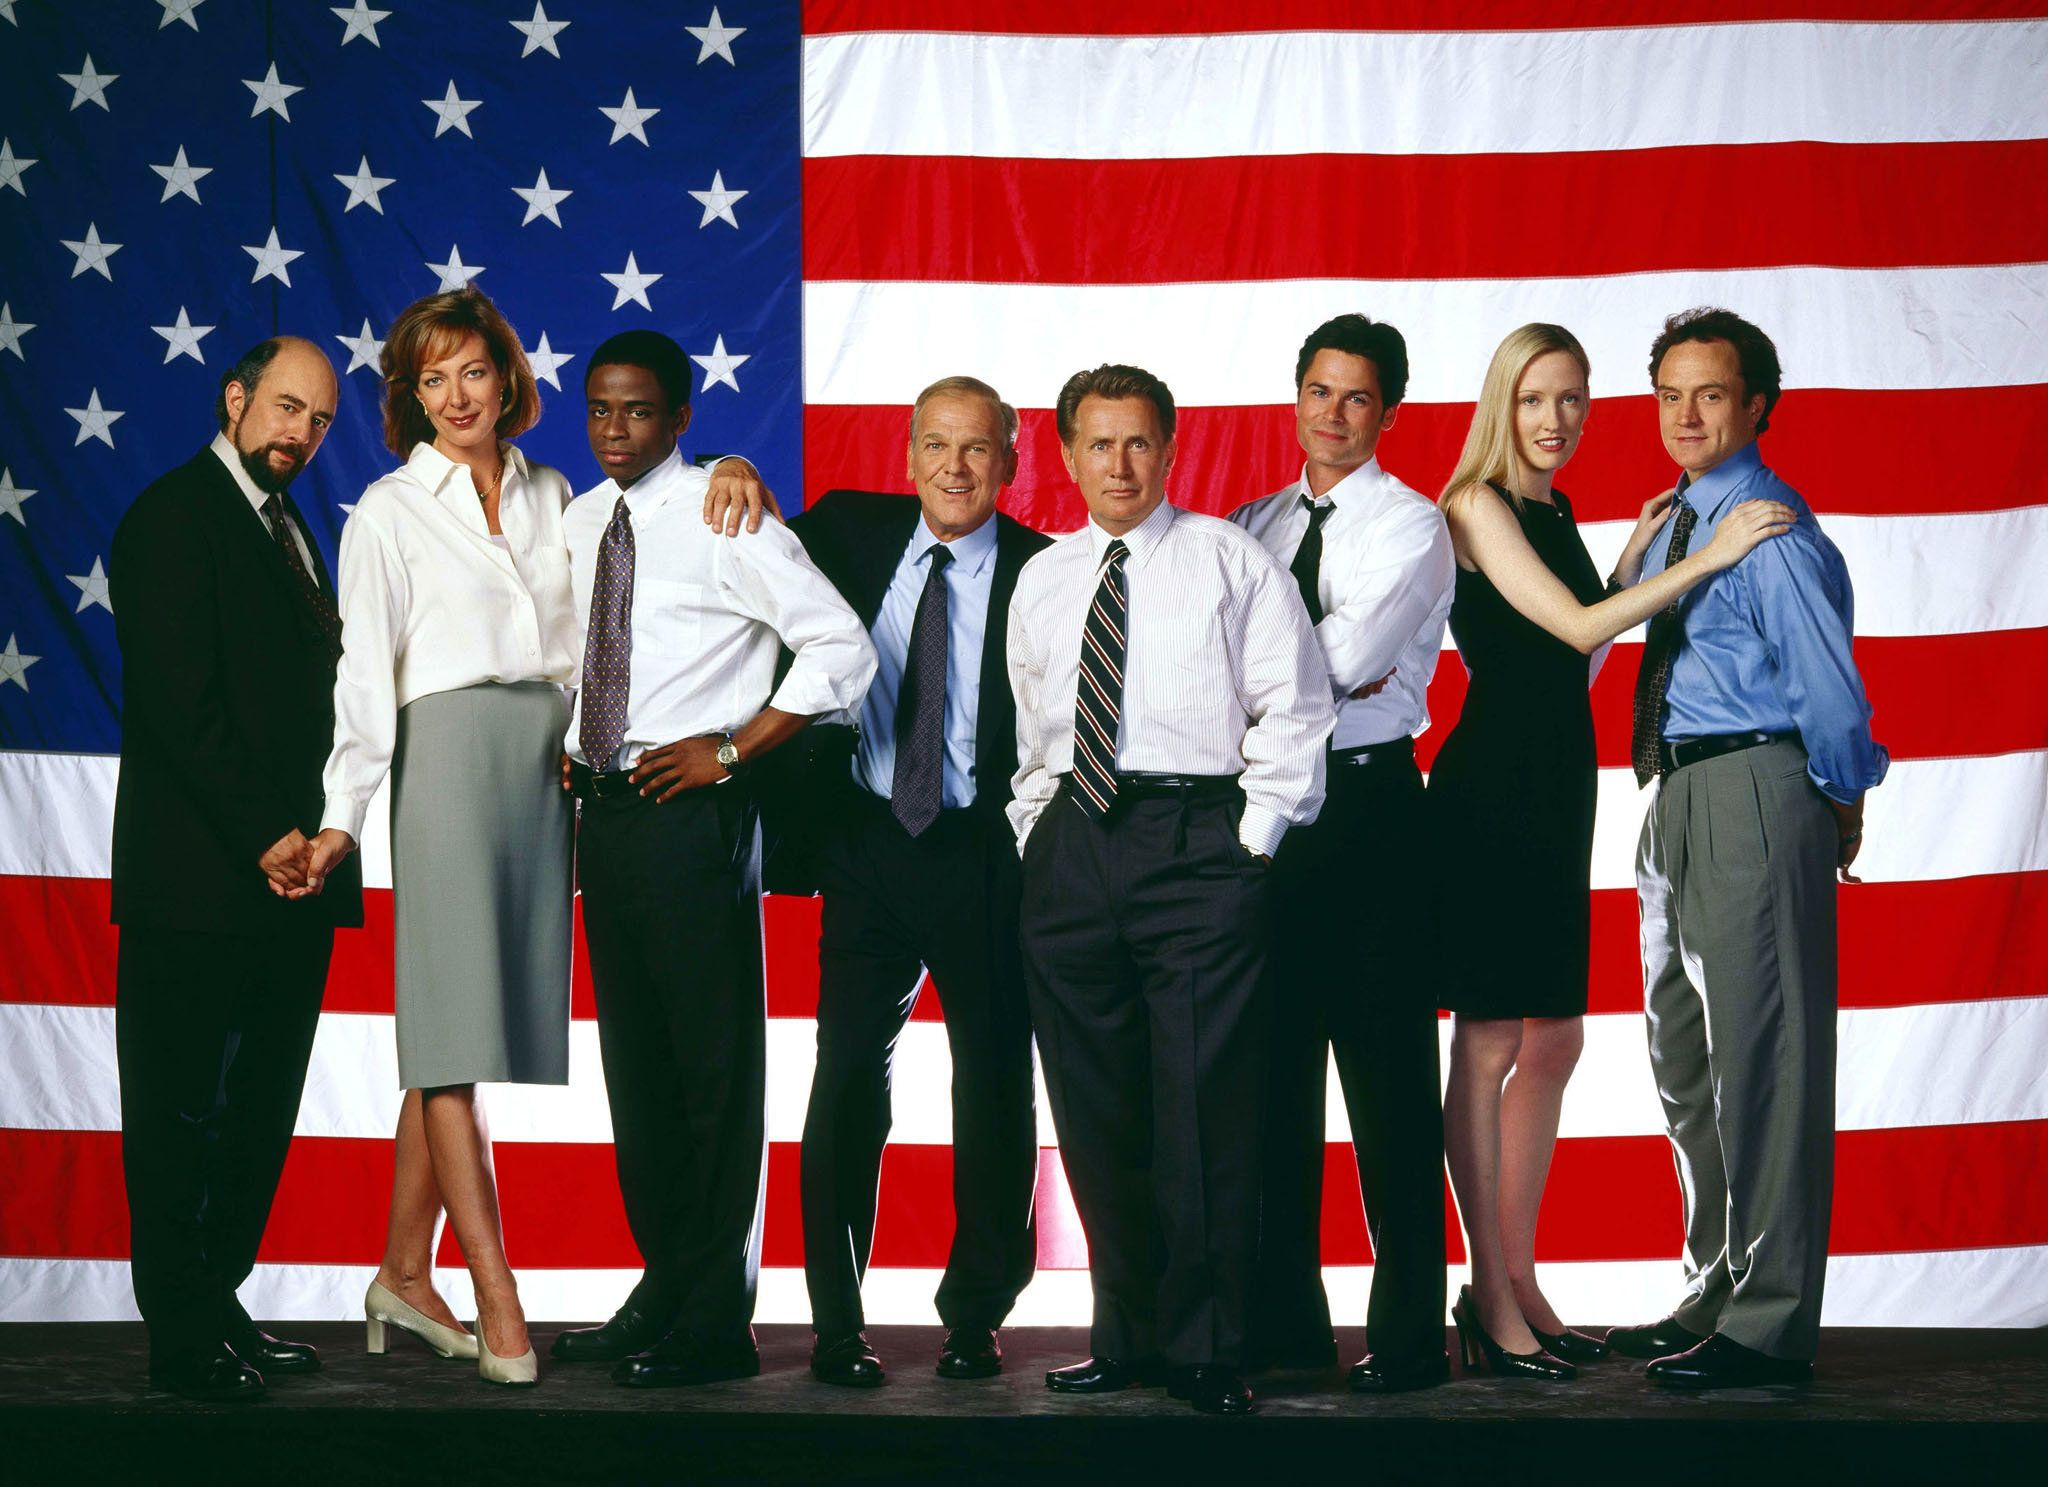 "The NBC television series ""West Wing,"" featuring (L-R) Richard Schiff, Allison Janney, Dule Hill, John Spencer, Martin Sheen as President Josiah Bartlet, Rob Lowe, Janel Moloney and Brad Whitford shown in an undated publicity photo, received three nominations for the 53rd annual Writers Guild of America awards for television writing, according to Variety on January 12, 2001. ""Frasier"" and ""Saturday Night Live"" each received two nods, giving NBC the top spot with 10 nominations. The awards will be presented on March 4, 2001 in Los Angeles.  BK/MMR"